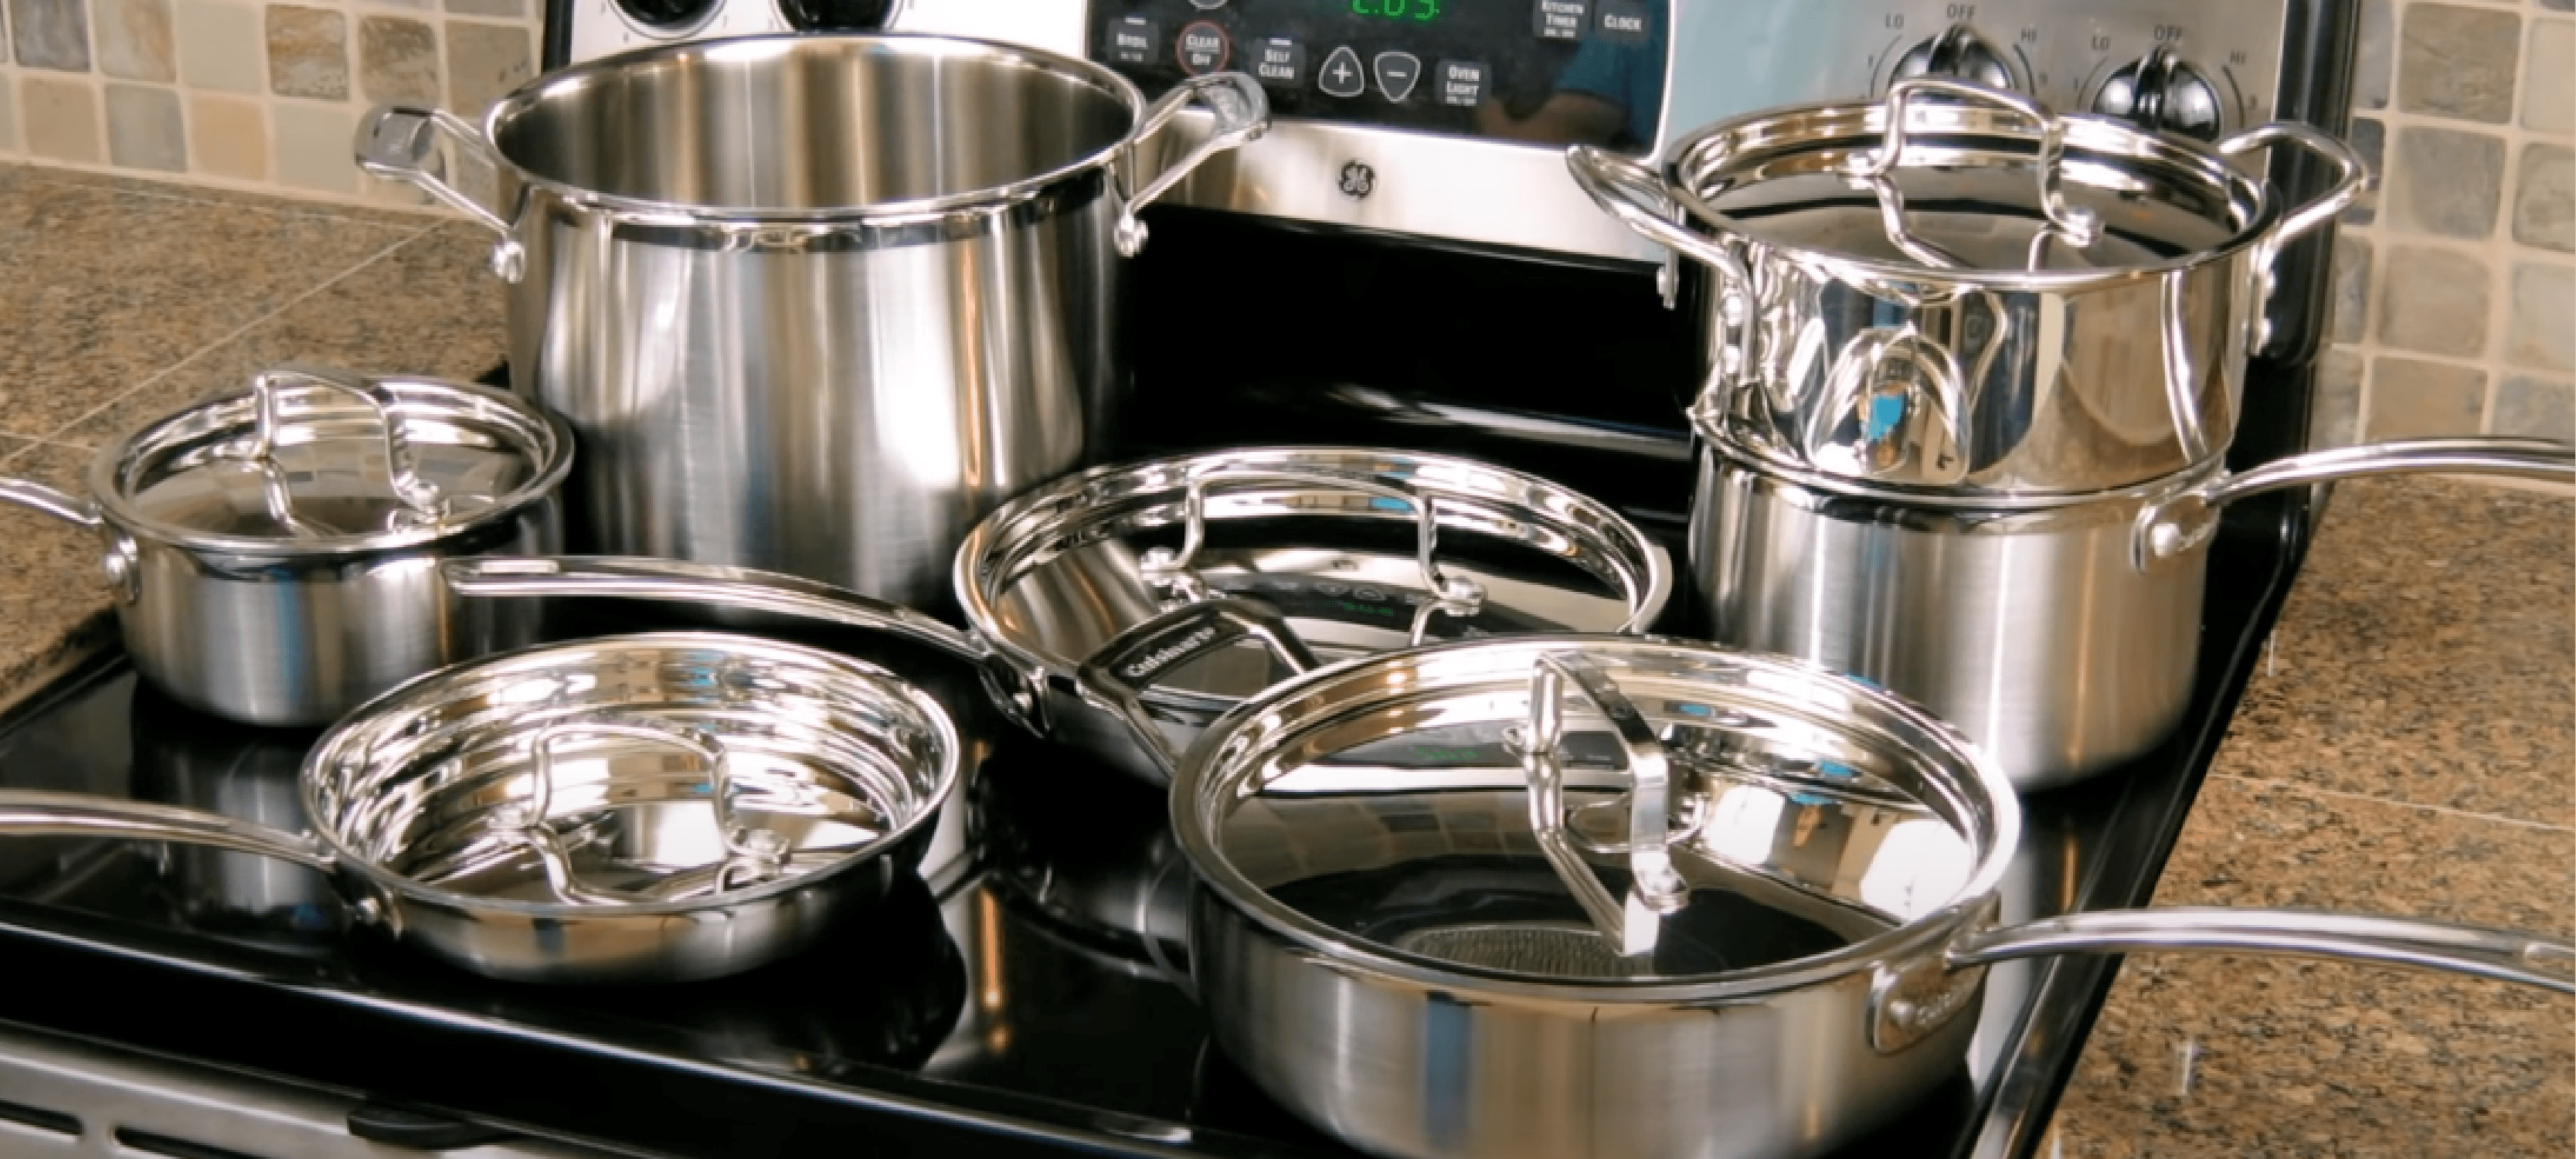 the stainless steel cookware resting on the glass stove